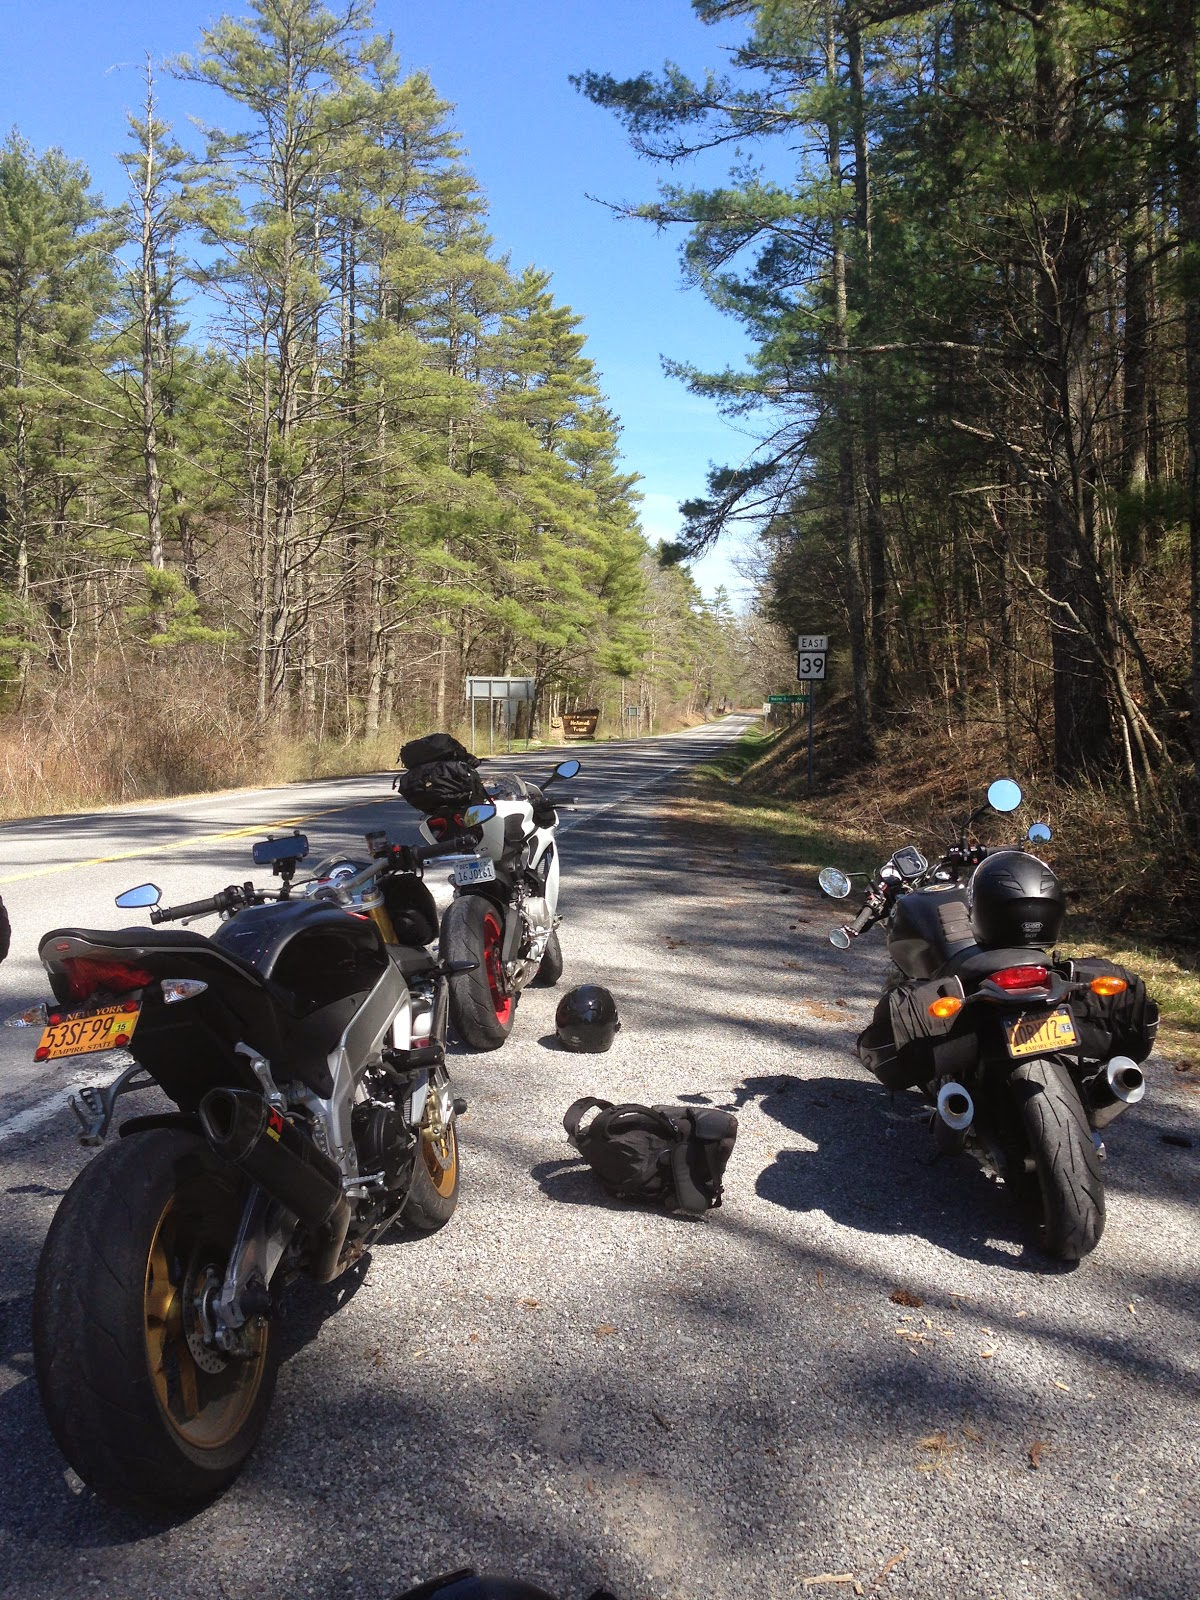 Ducati 899 Panigale, Tigho's Monster, Aprilia Tuono V4R motorcycles in George Washington National Forest